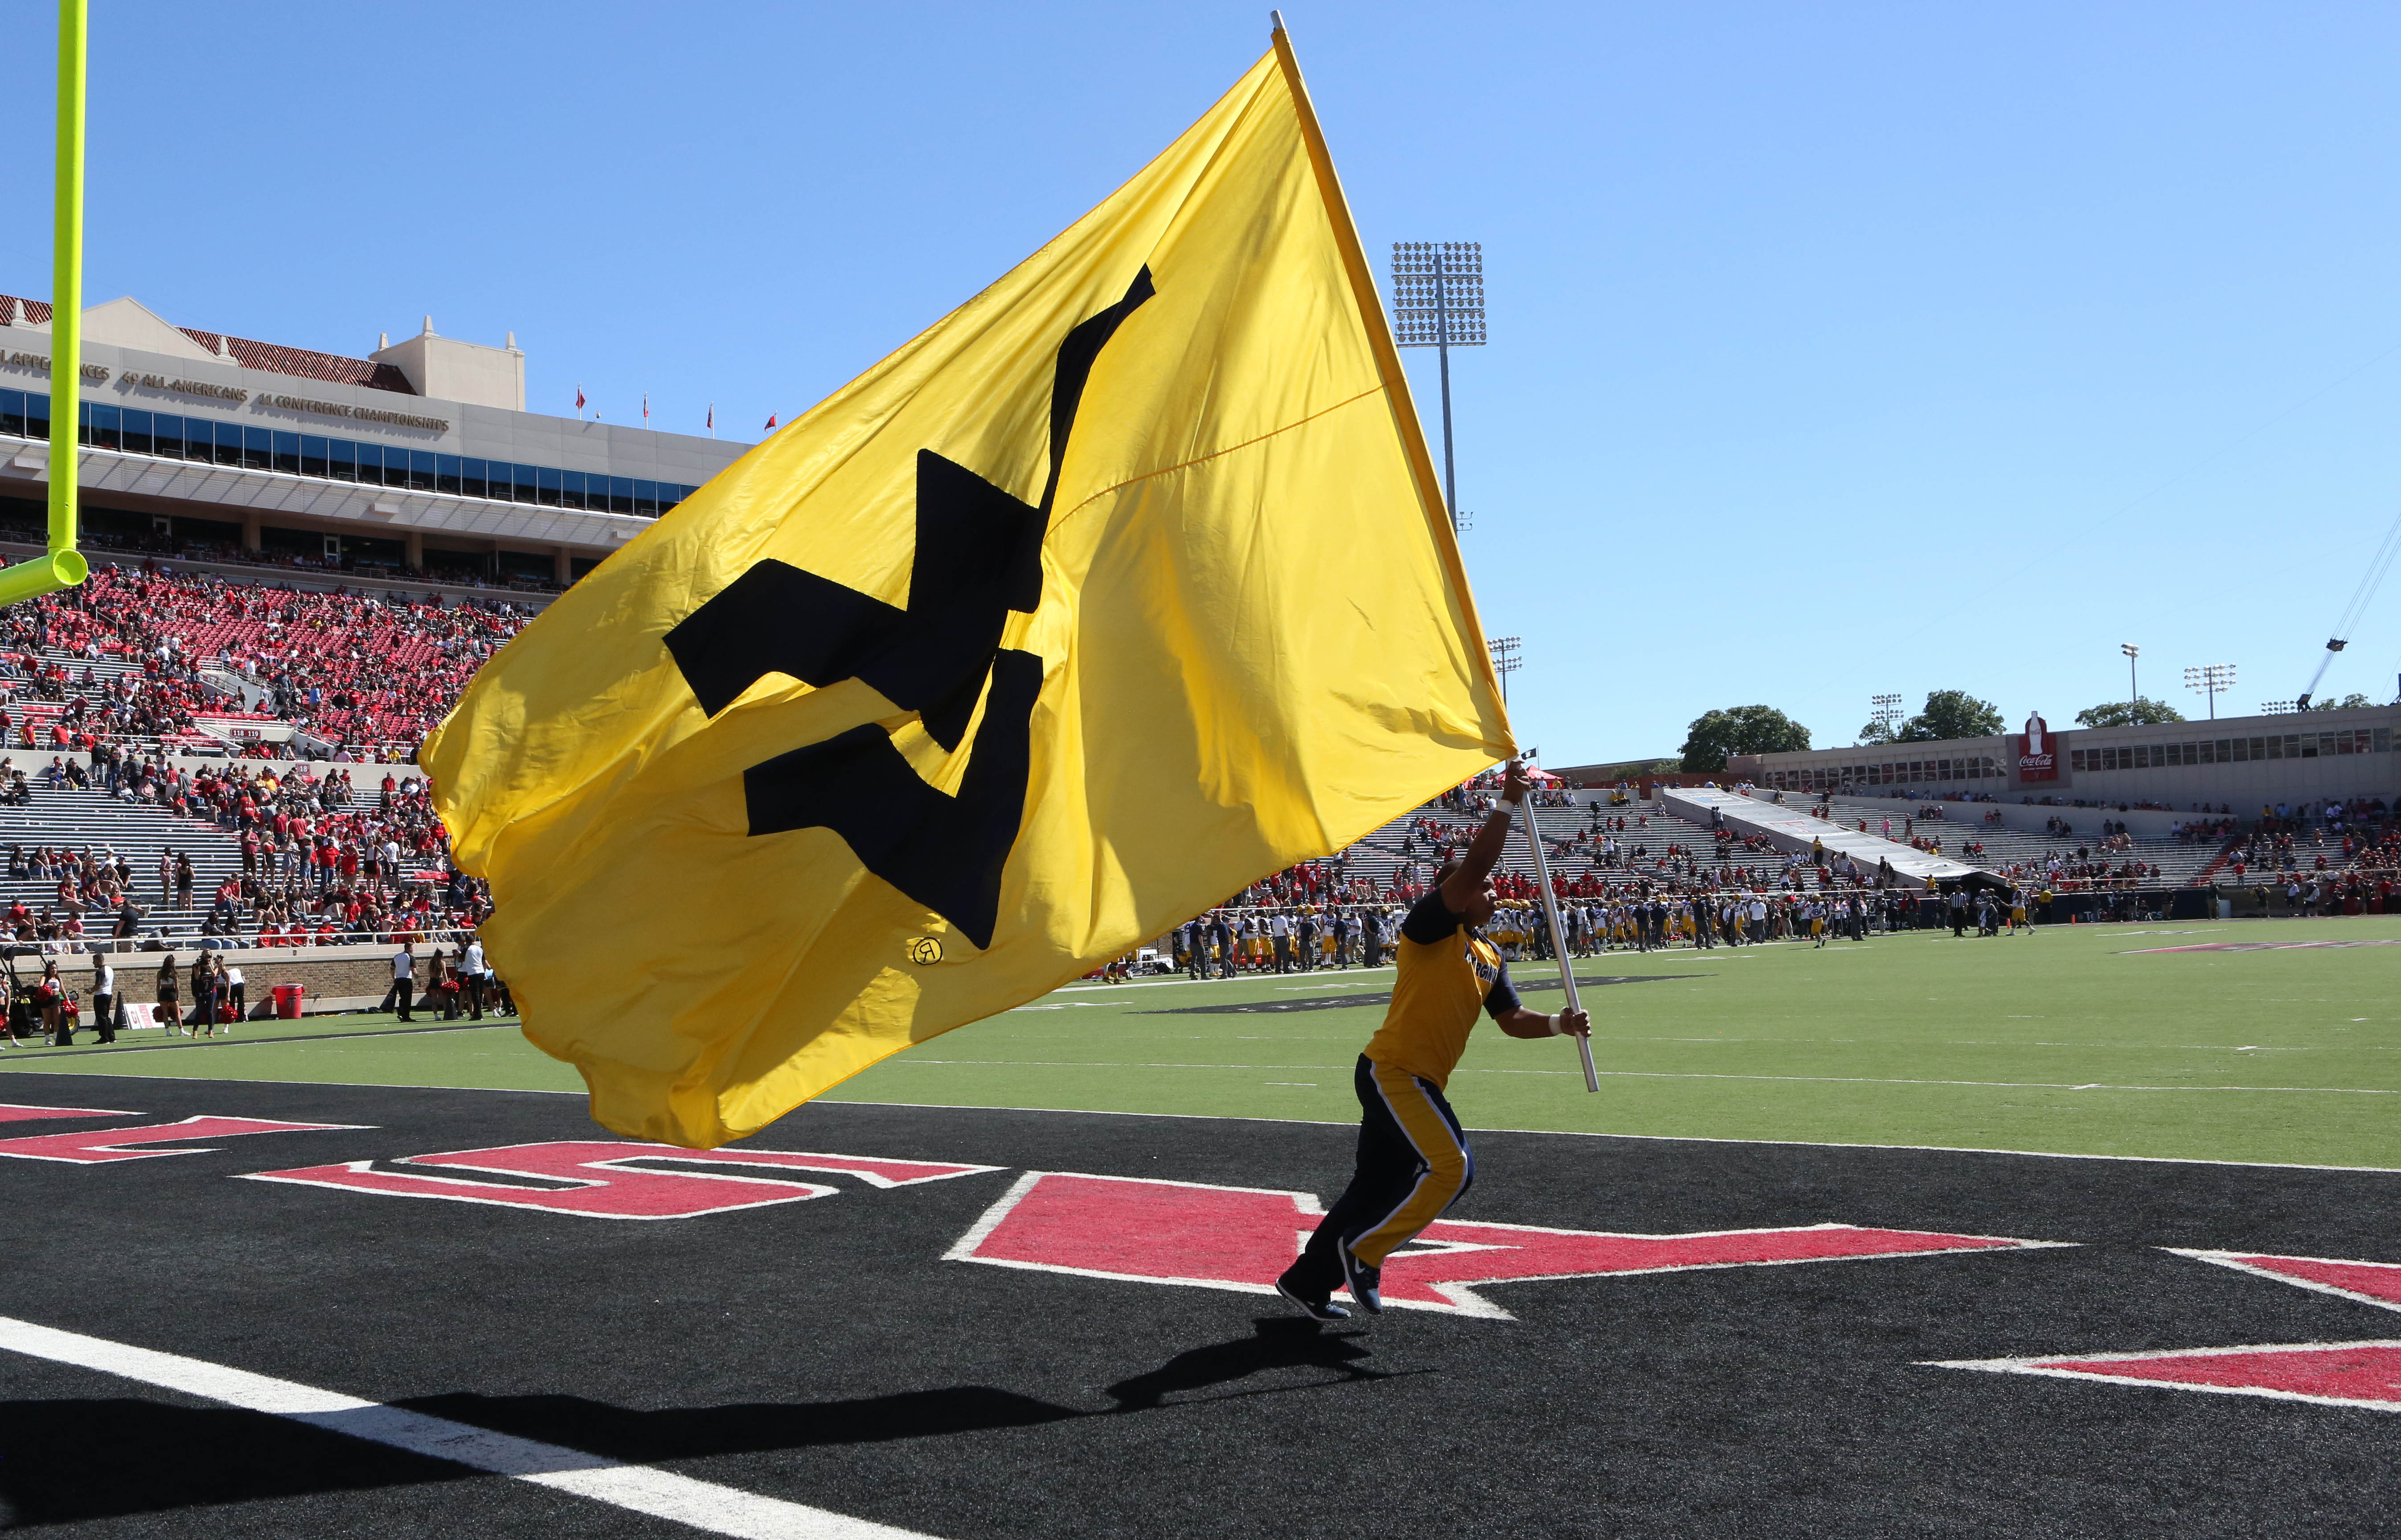 West Virginia fans are happy today as they moved up substantially in both polls.